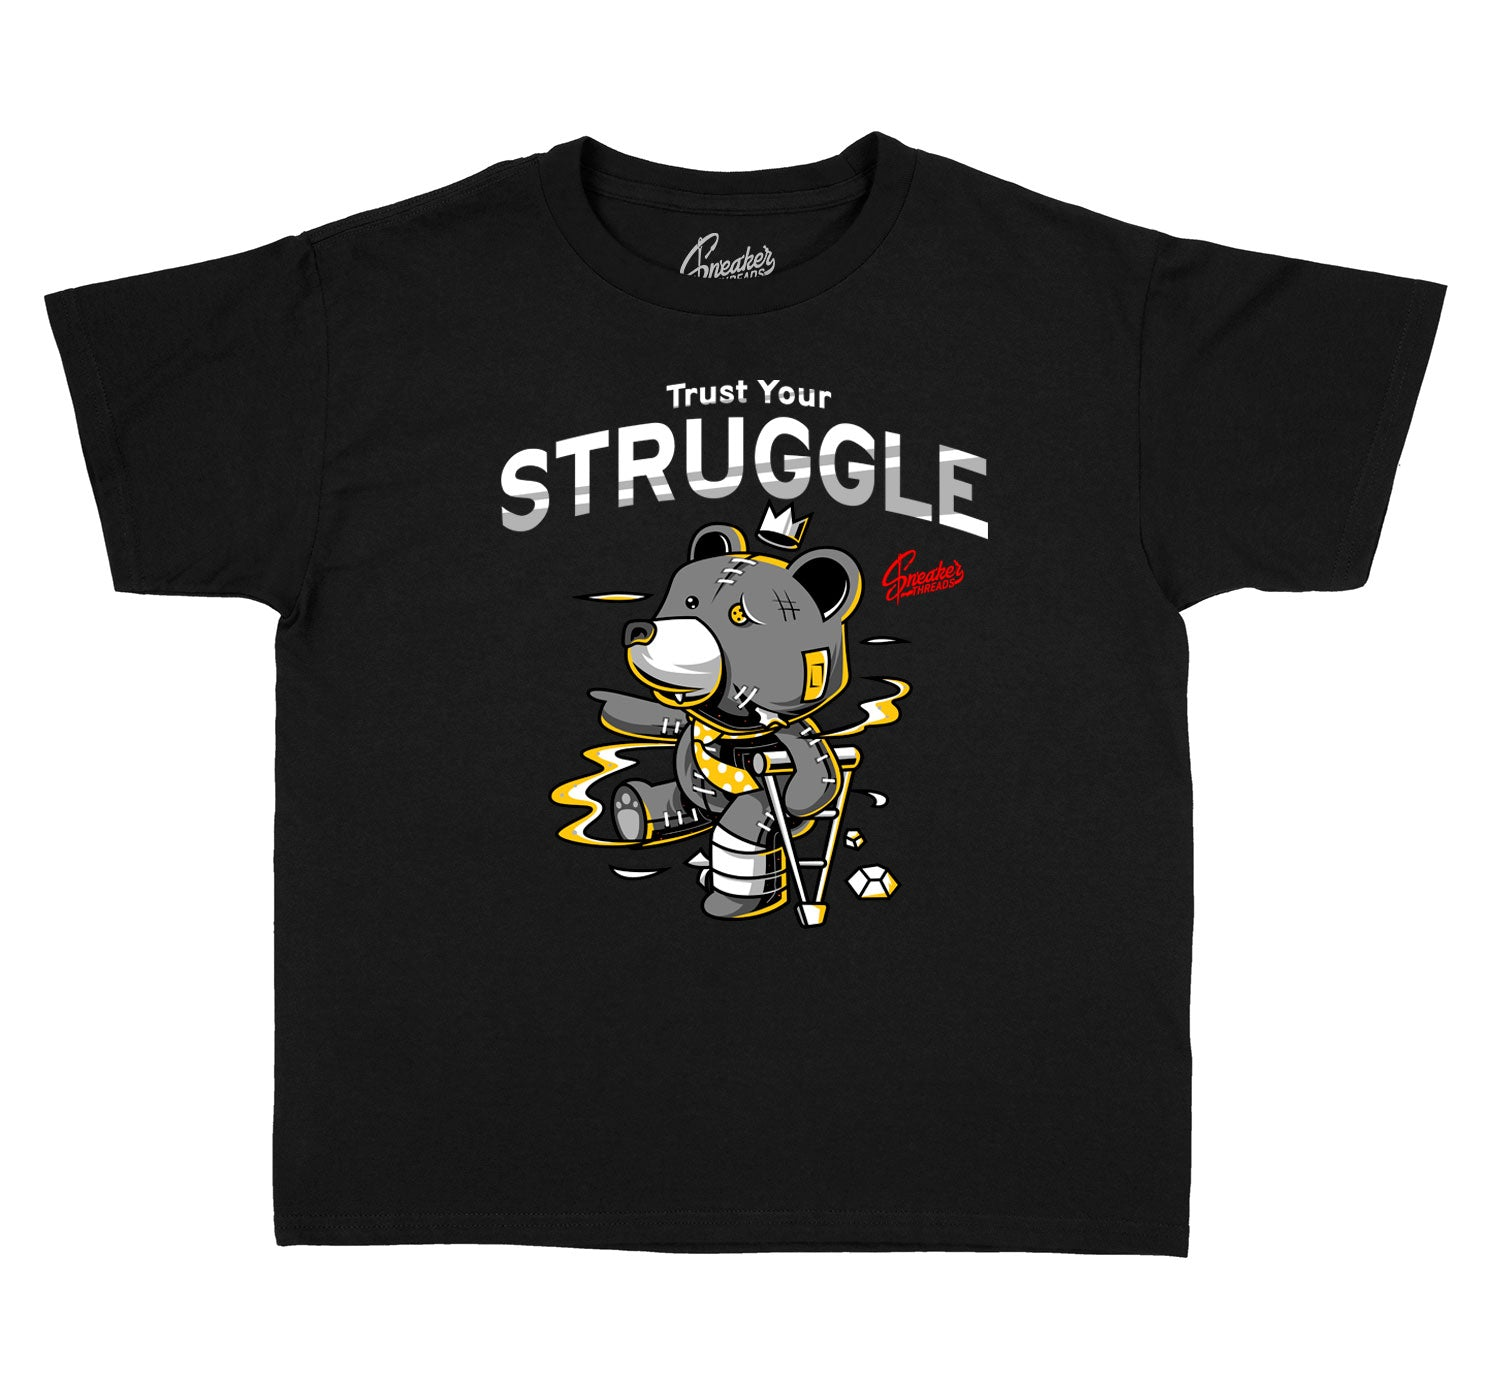 Kids Cool Grey 3 Shirt - Trust Your Struggle - Black